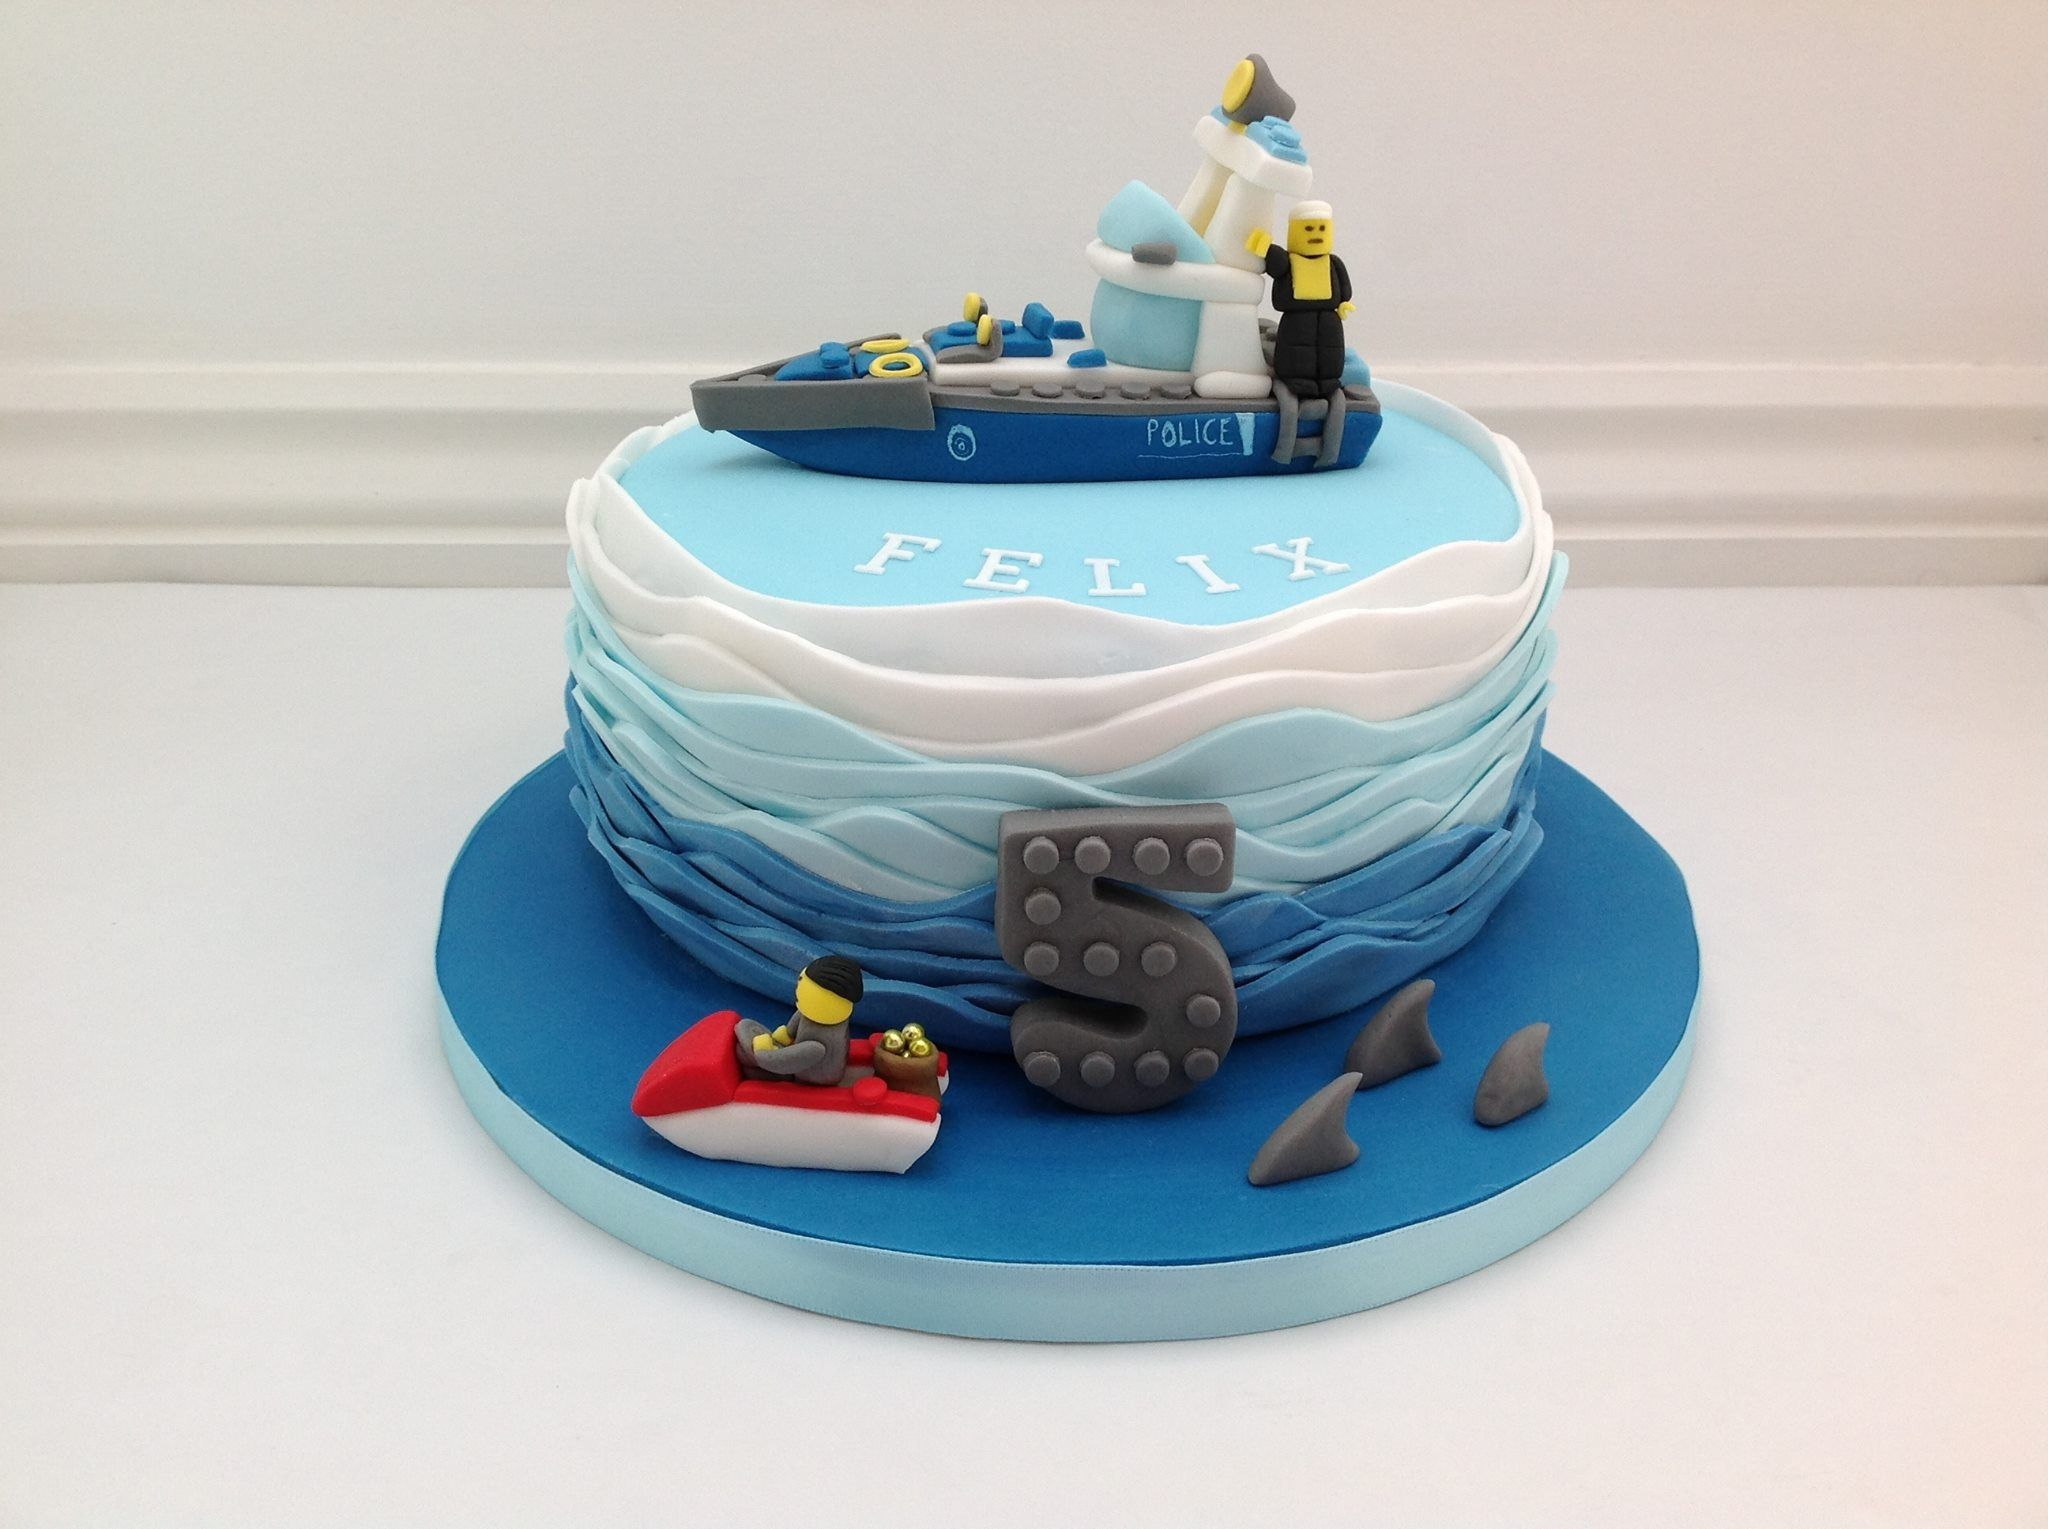 A Cops And Robbers Lego Birthday Cake With Blue Ombre Wave Effect - Lego birthday cake decorations